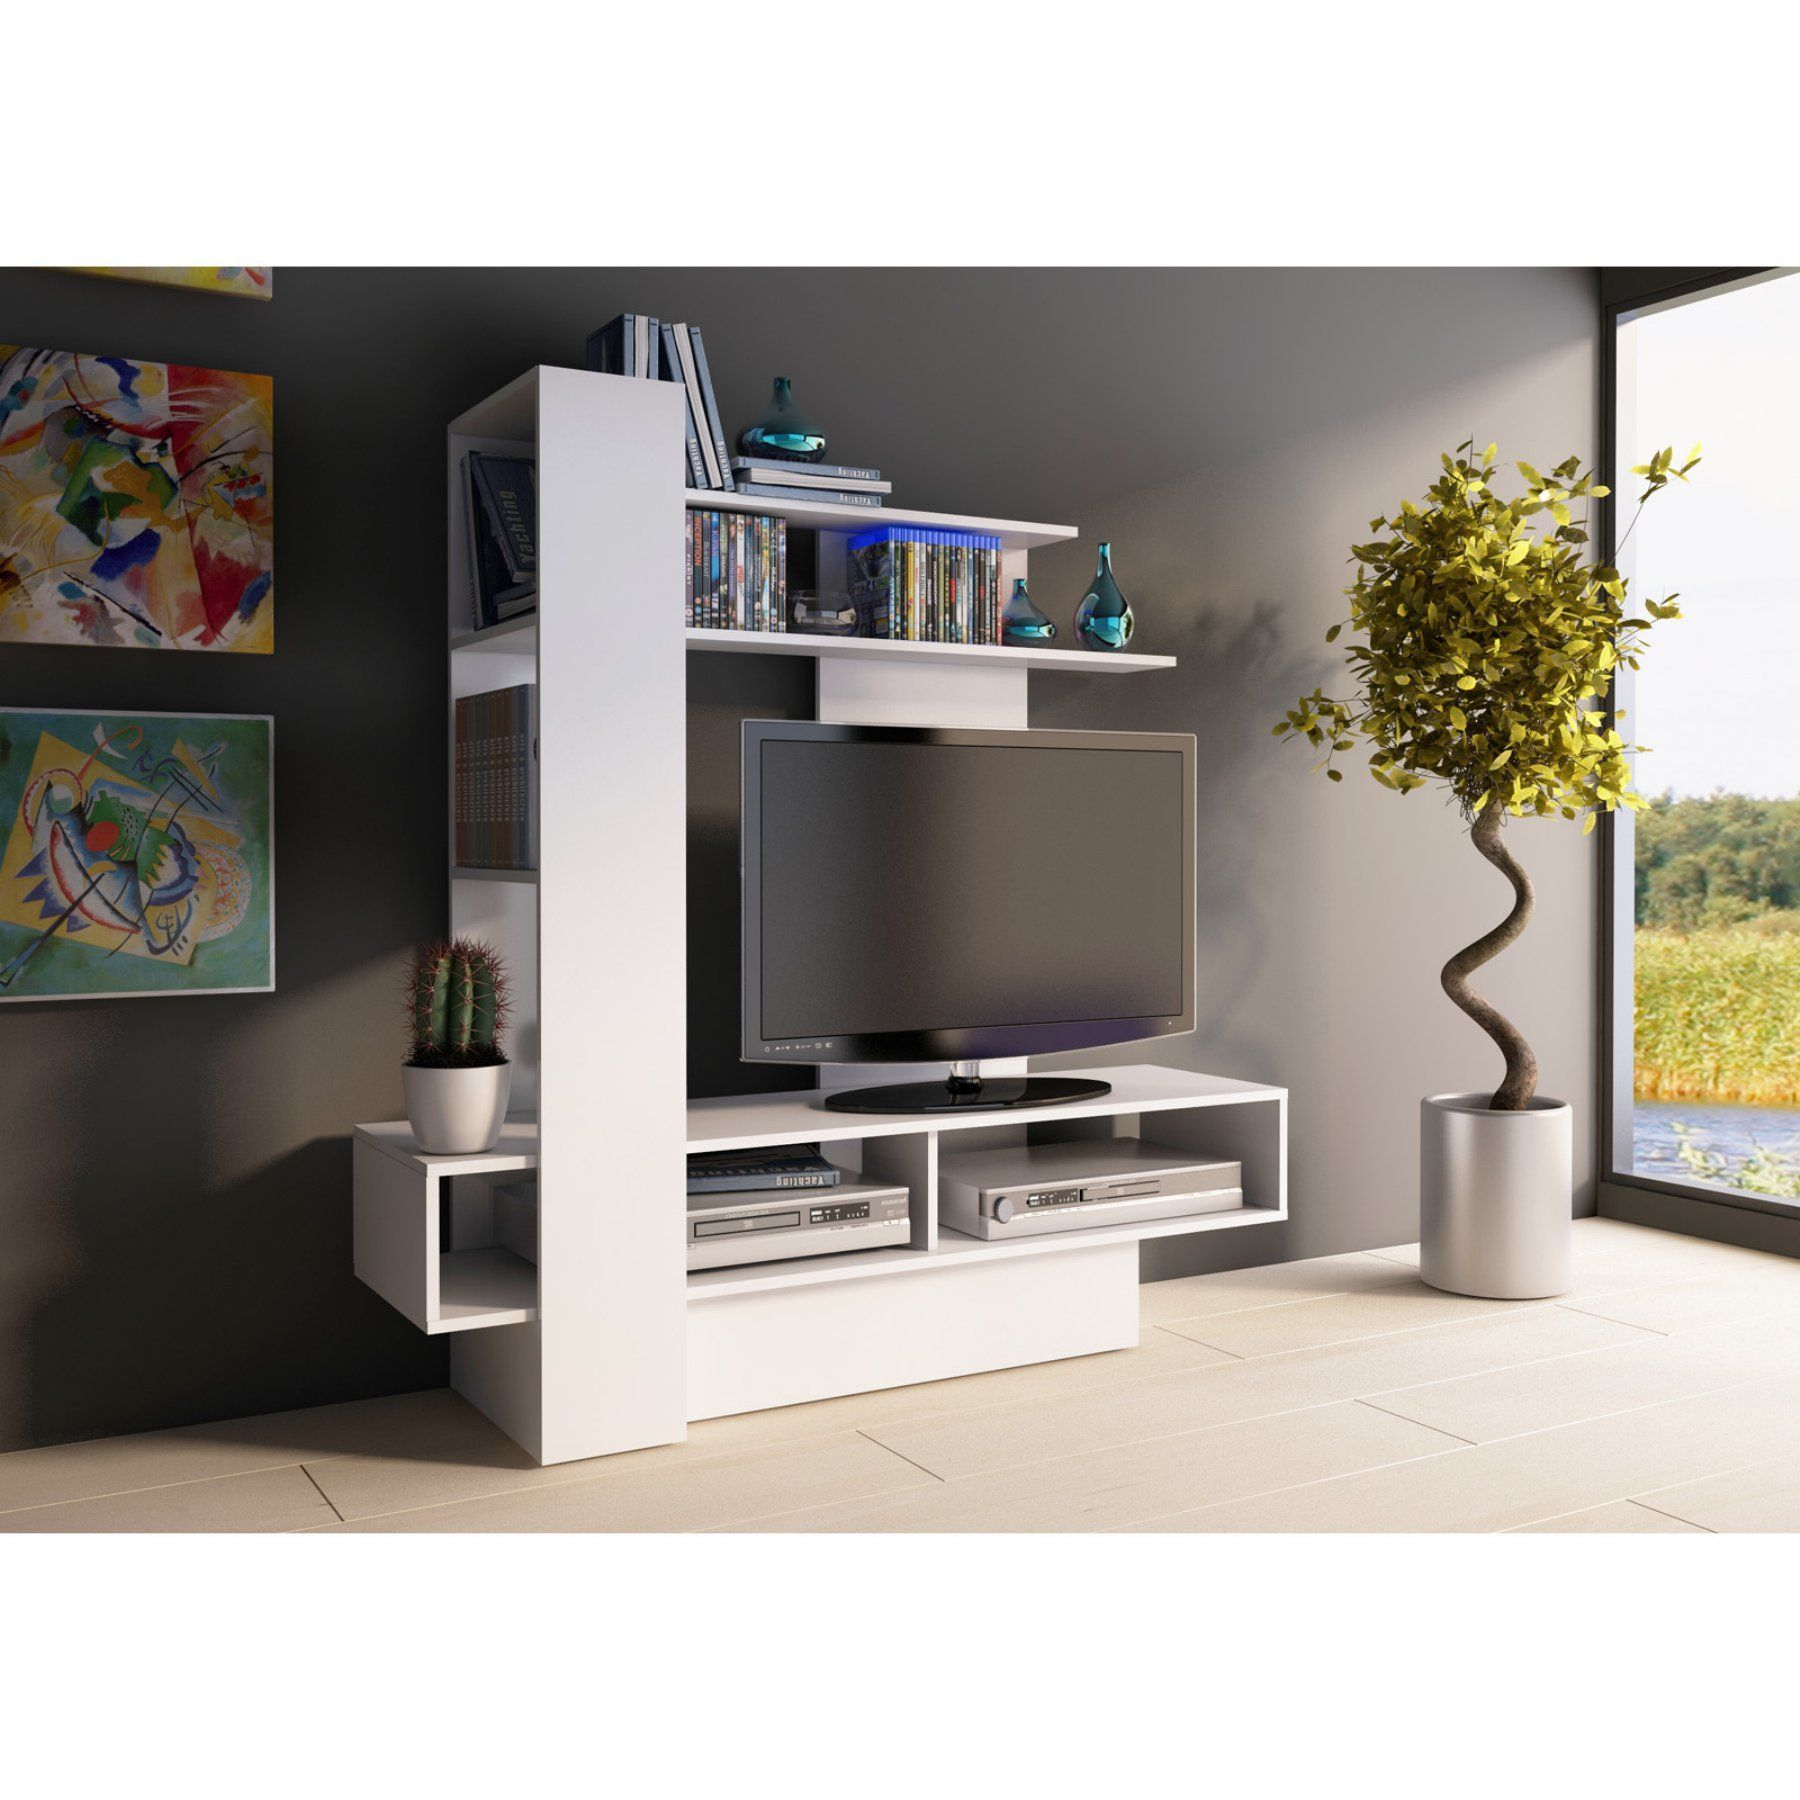 Entertainment Center Accent Wall With Vinyl: Trasman Sky Wall Unit TV Stand - 4010